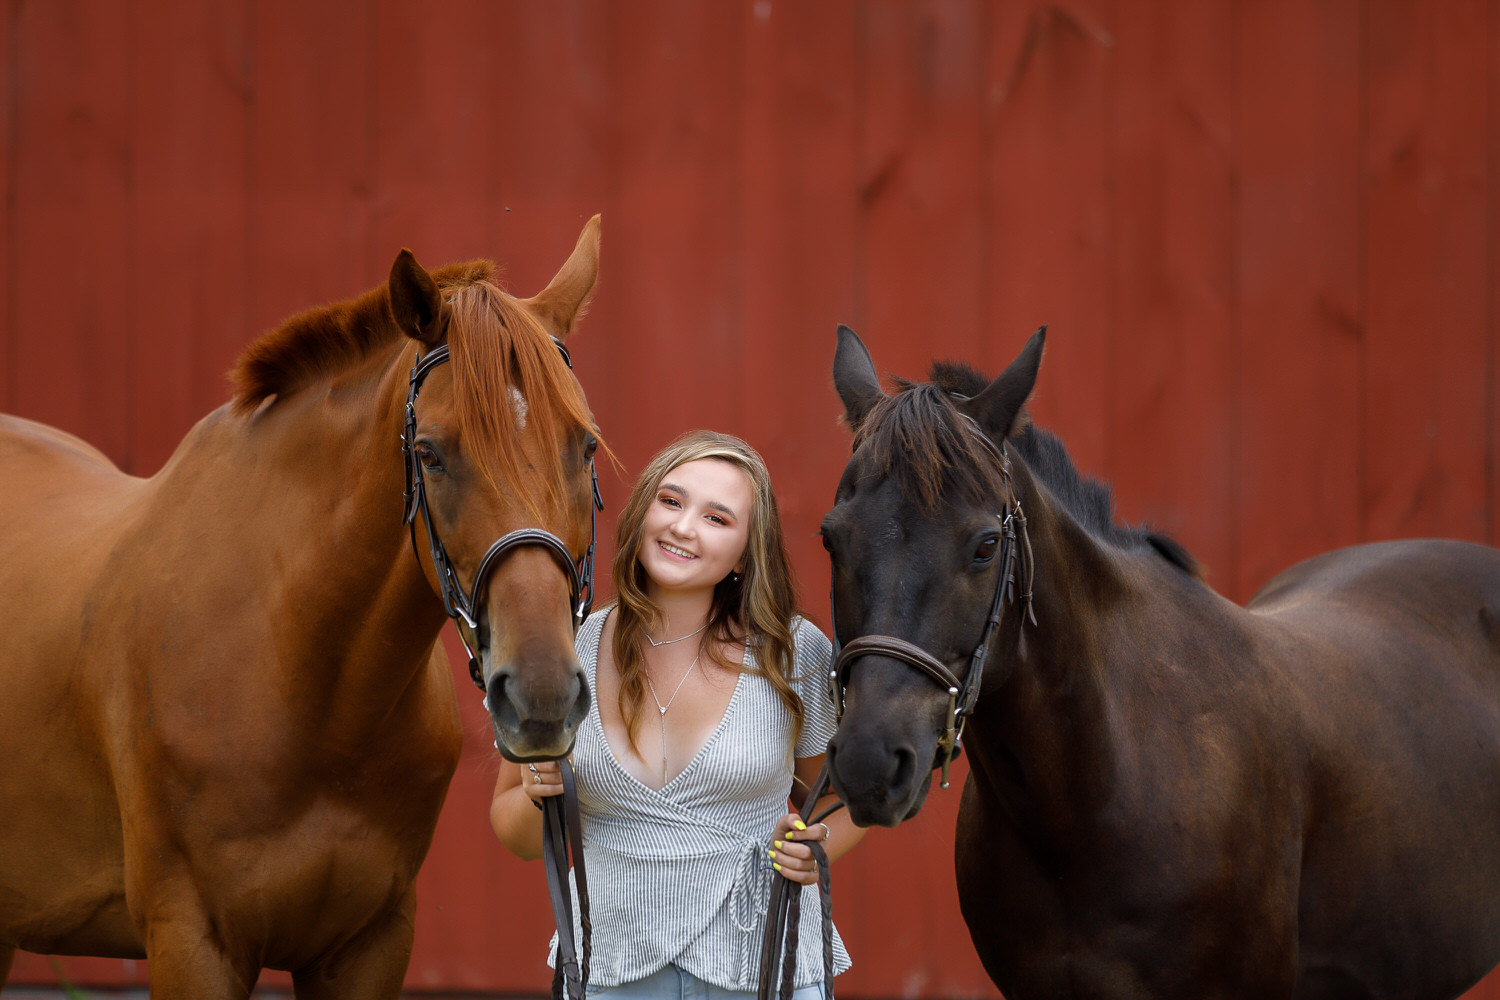 Senior girl photo with her two horses